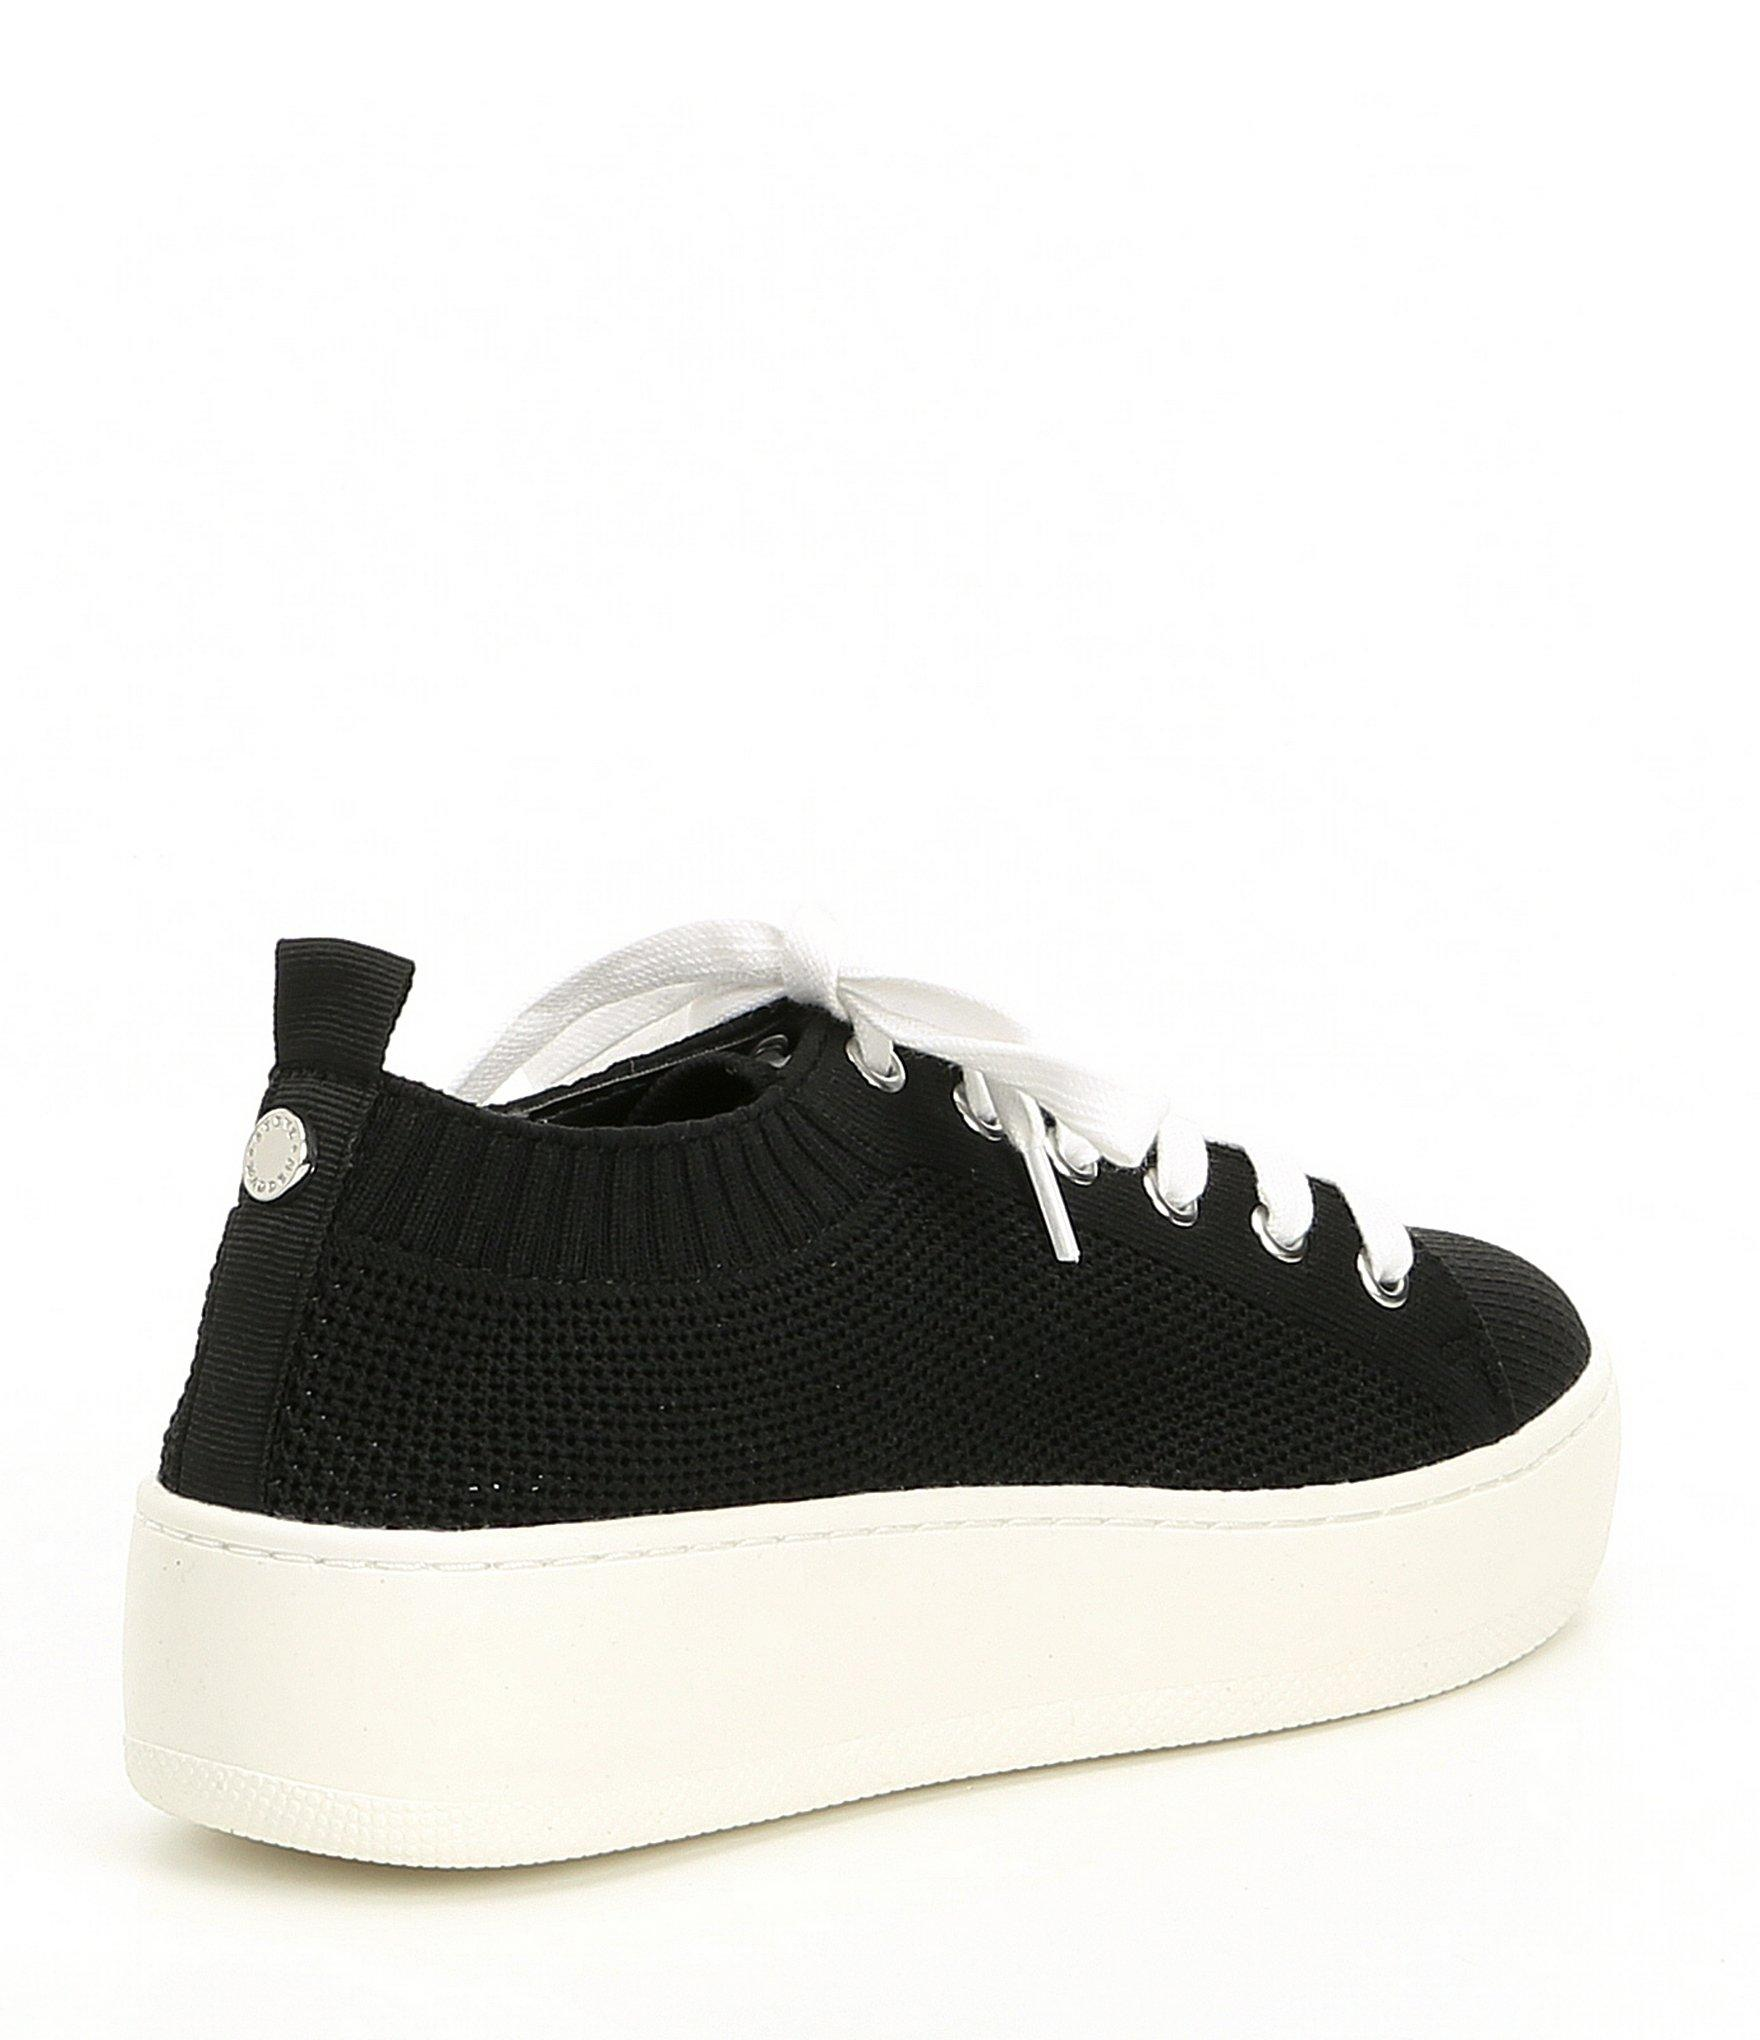 856bf871b5d Steve Madden - Black Bardo Perforated Lace-up Sneakers - Lyst. View  fullscreen